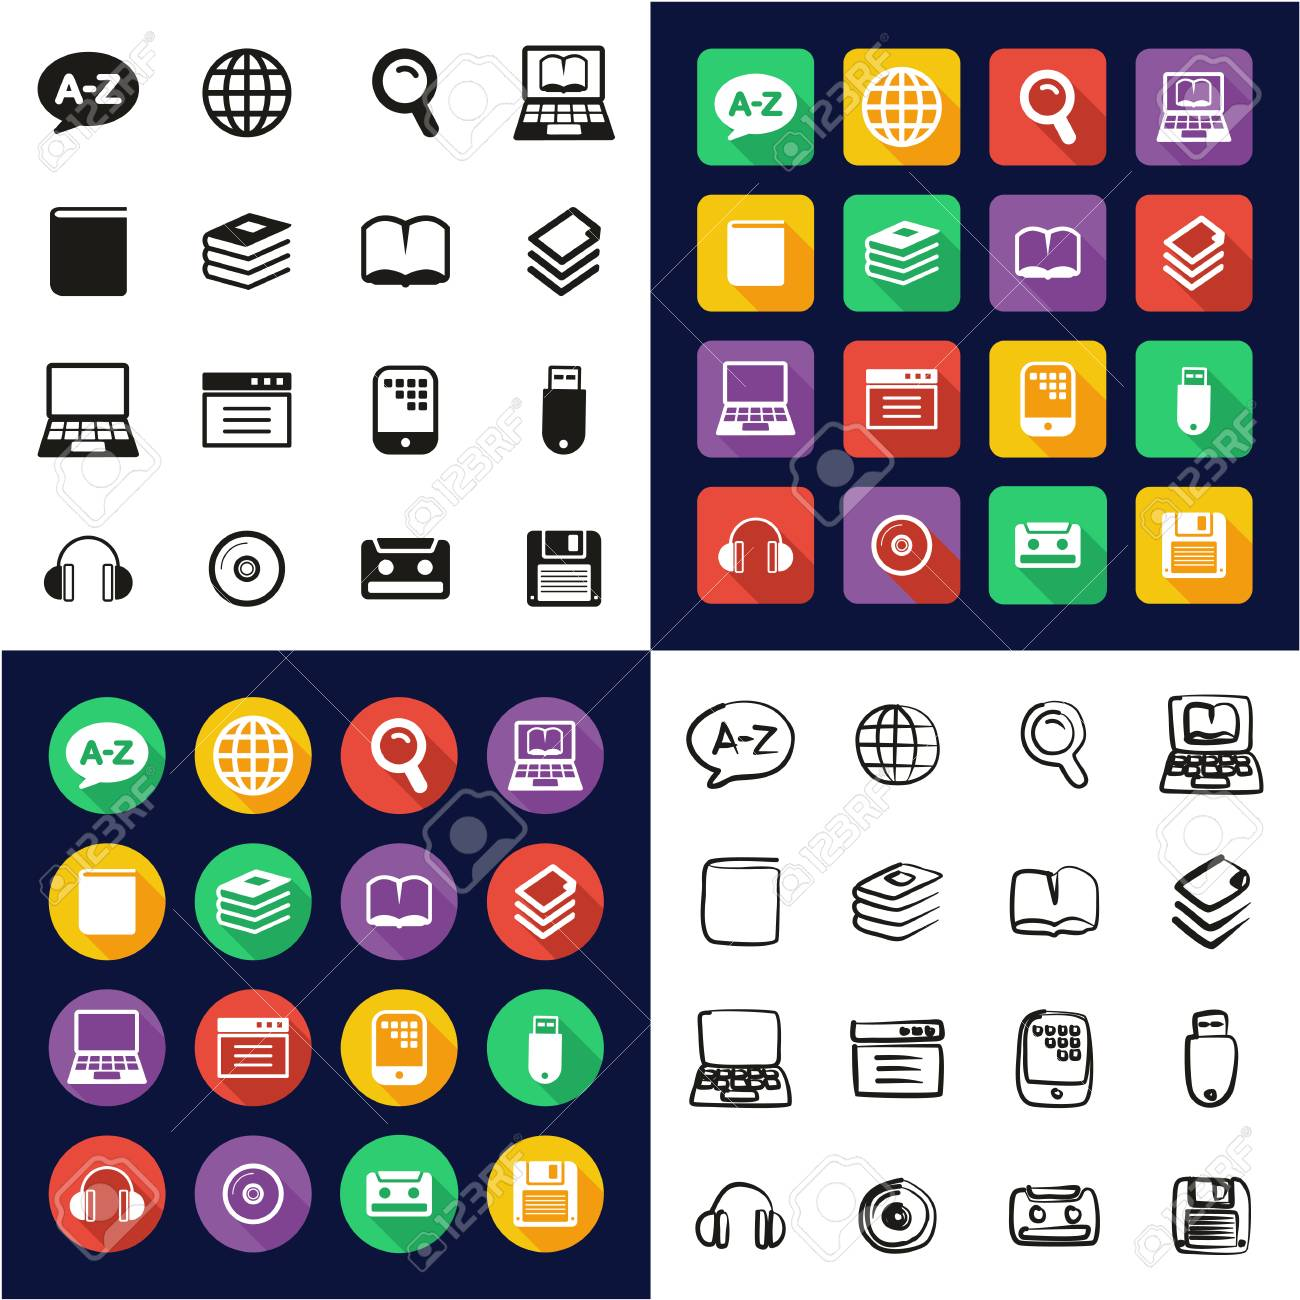 Dictionary or Glossary Icons All in One Icons Black and White Color Flat Design Freehand Set - 119288143